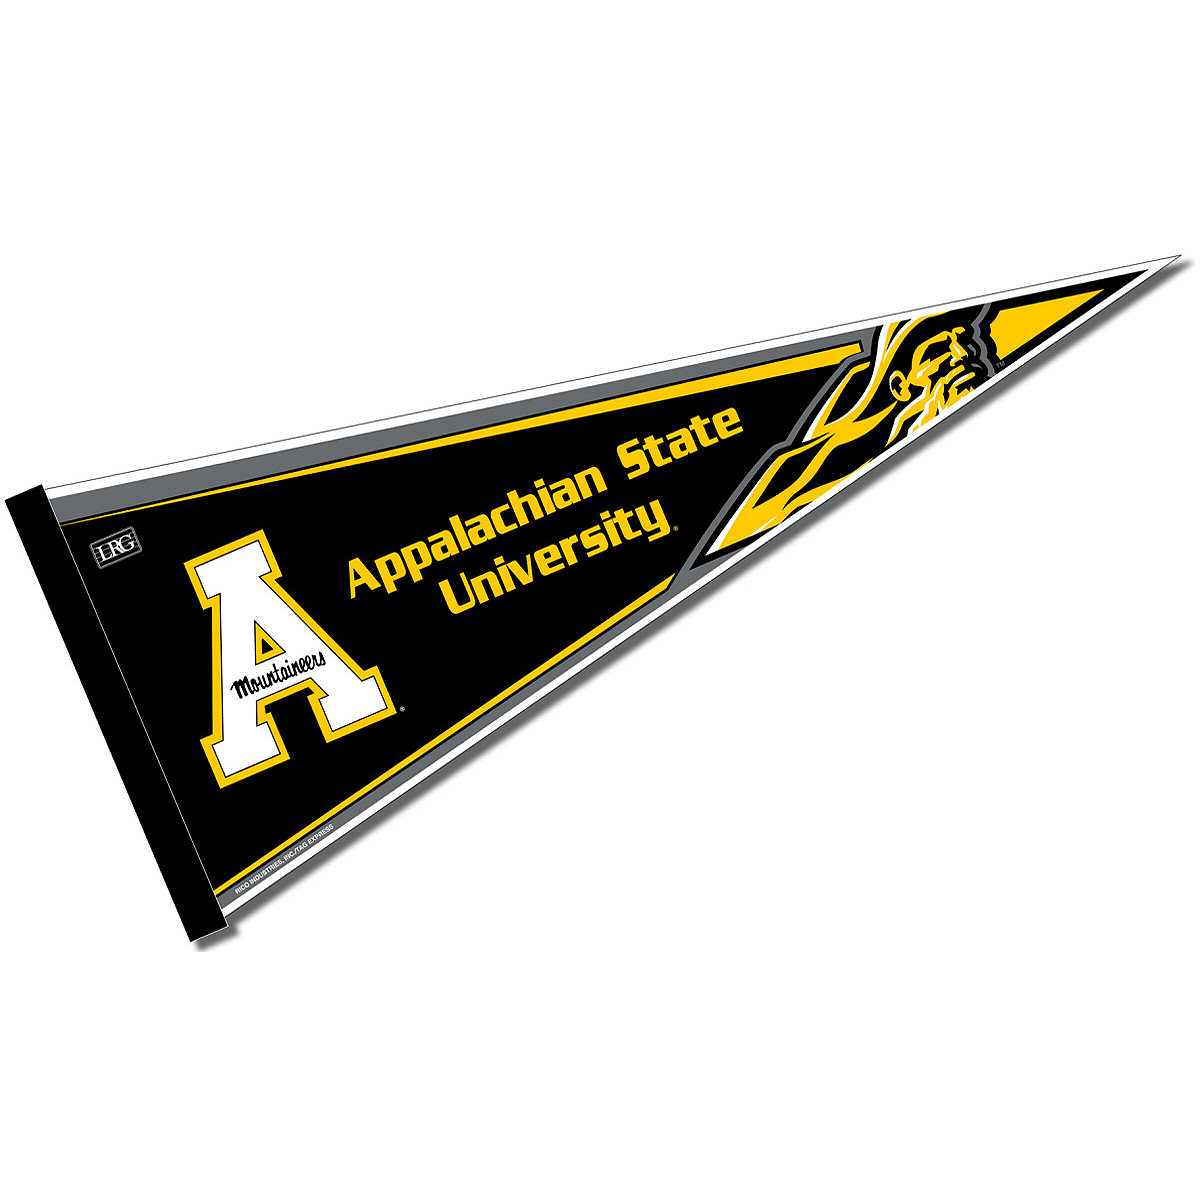 d111d7fe99aee Appalachian State University Mountaineers 12